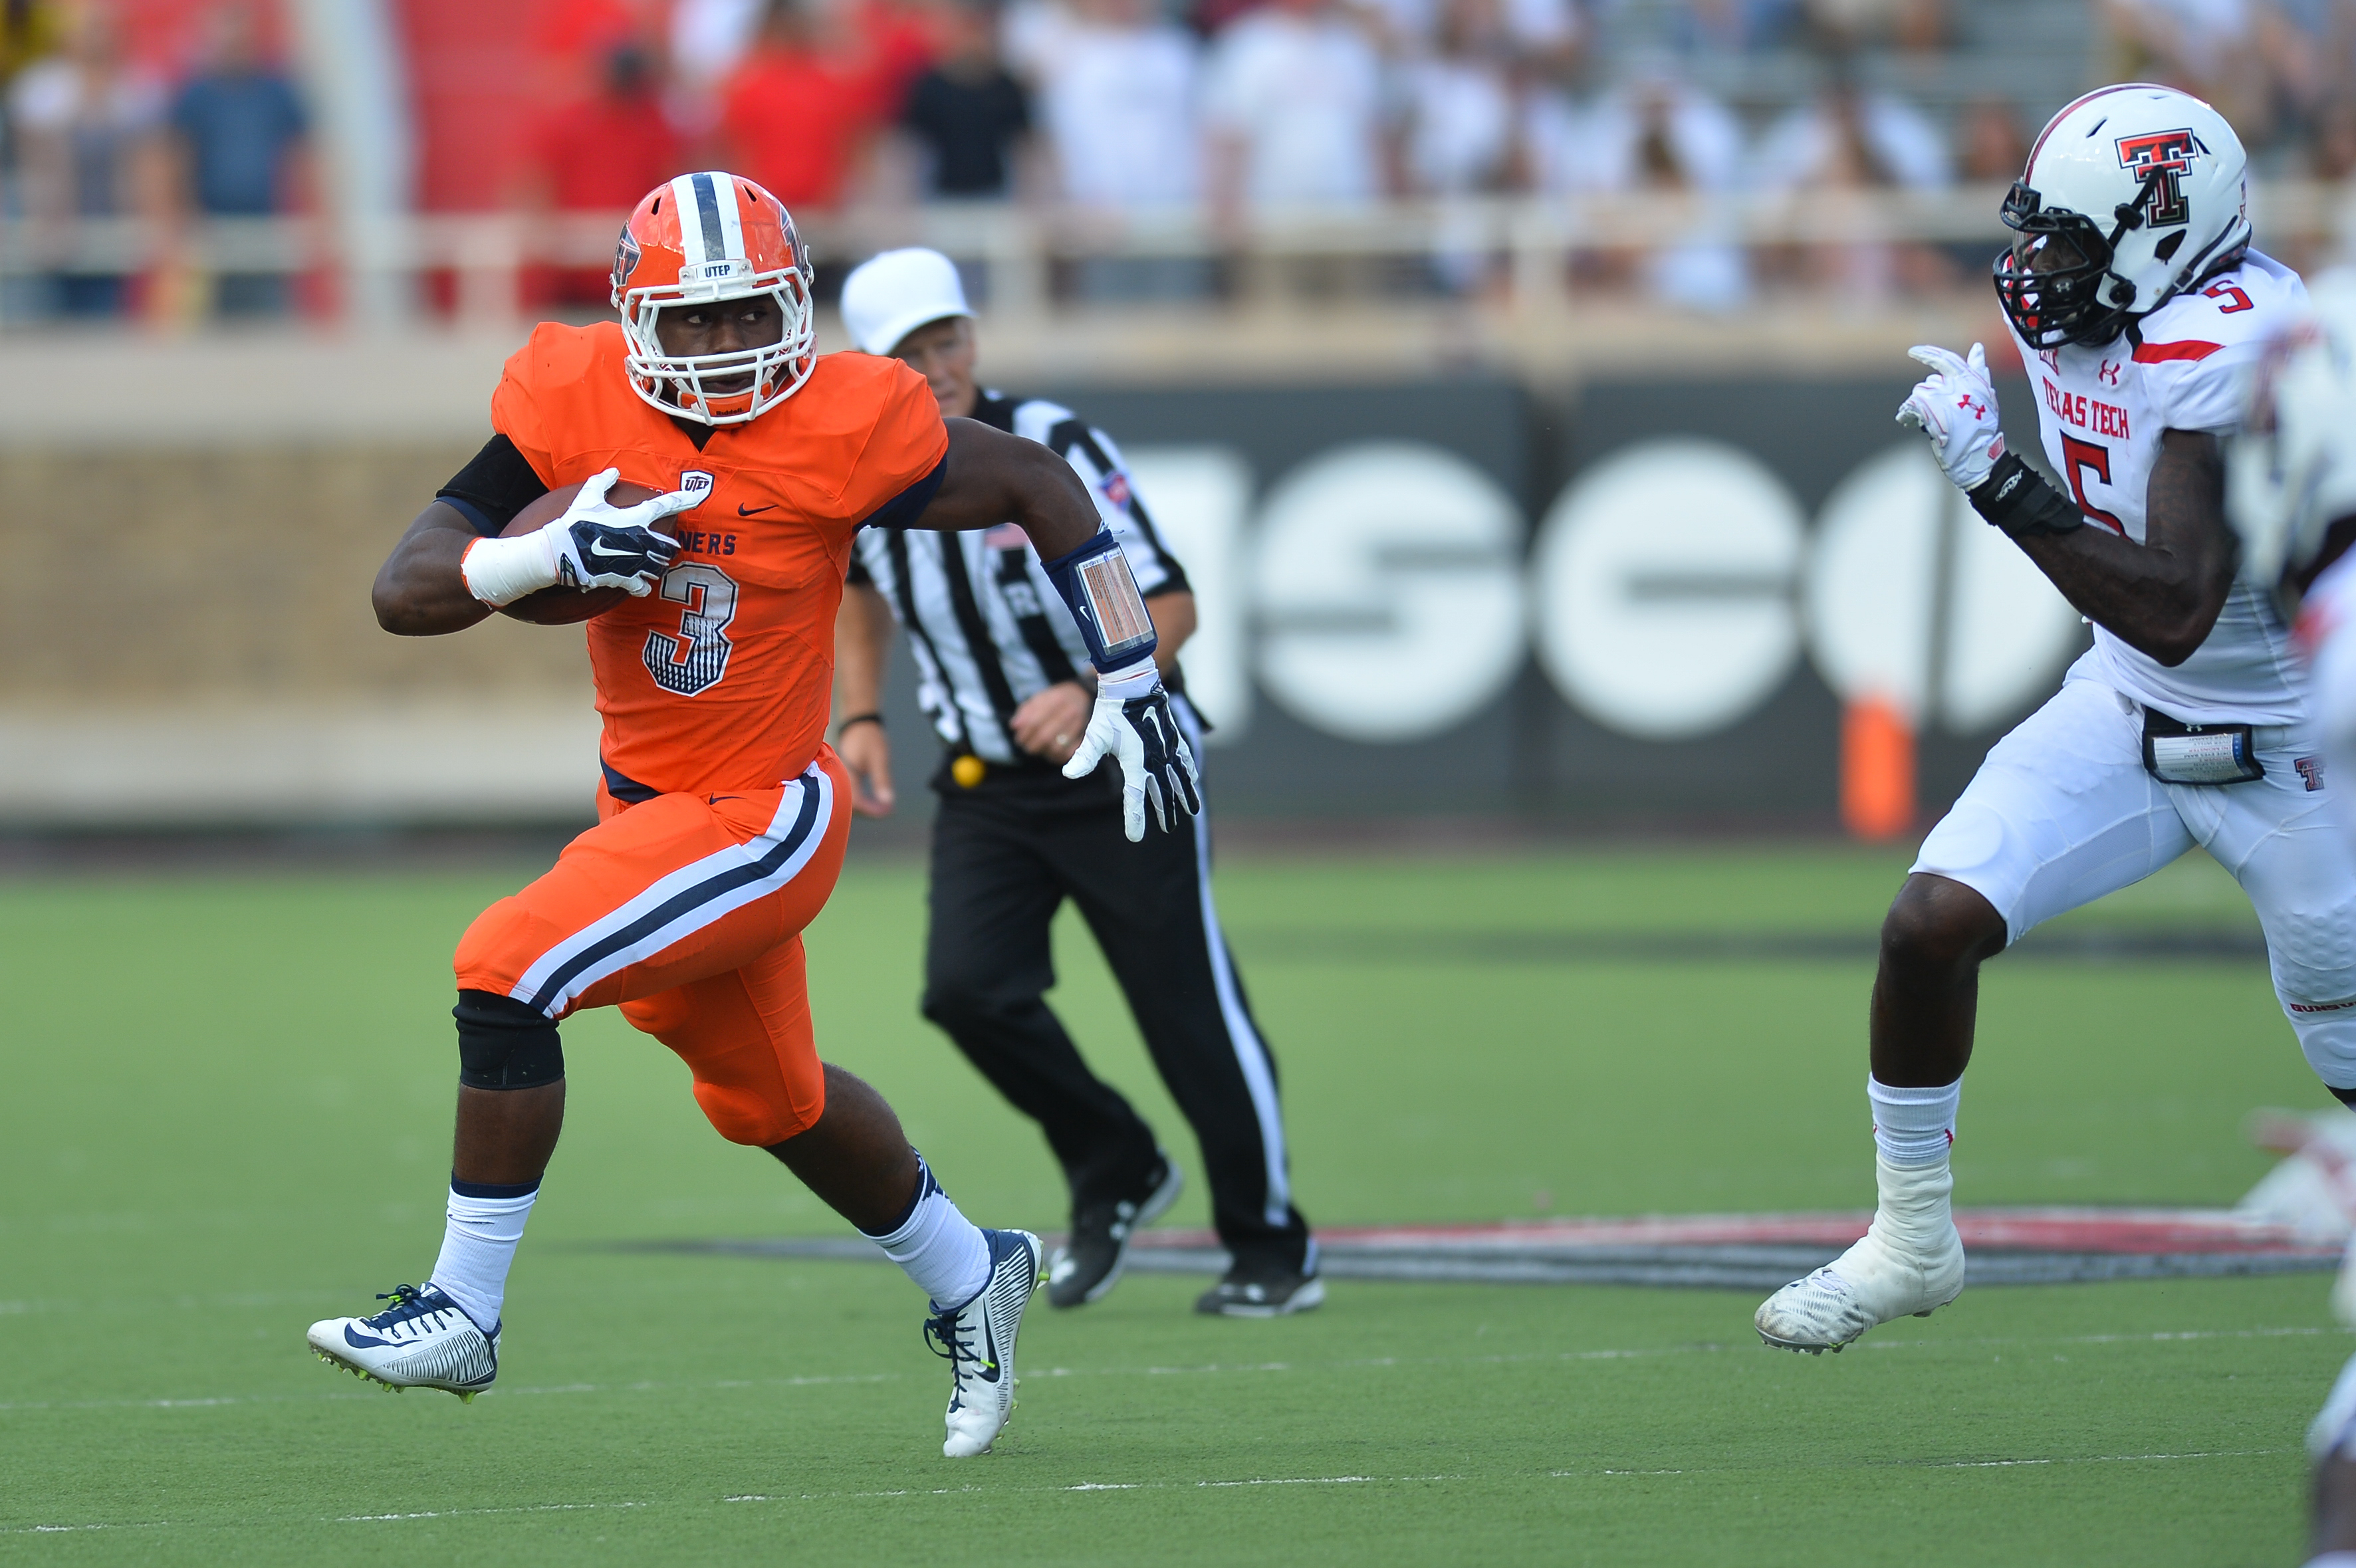 Can Treyvon Hughes be the next star in UTEP's backfield?